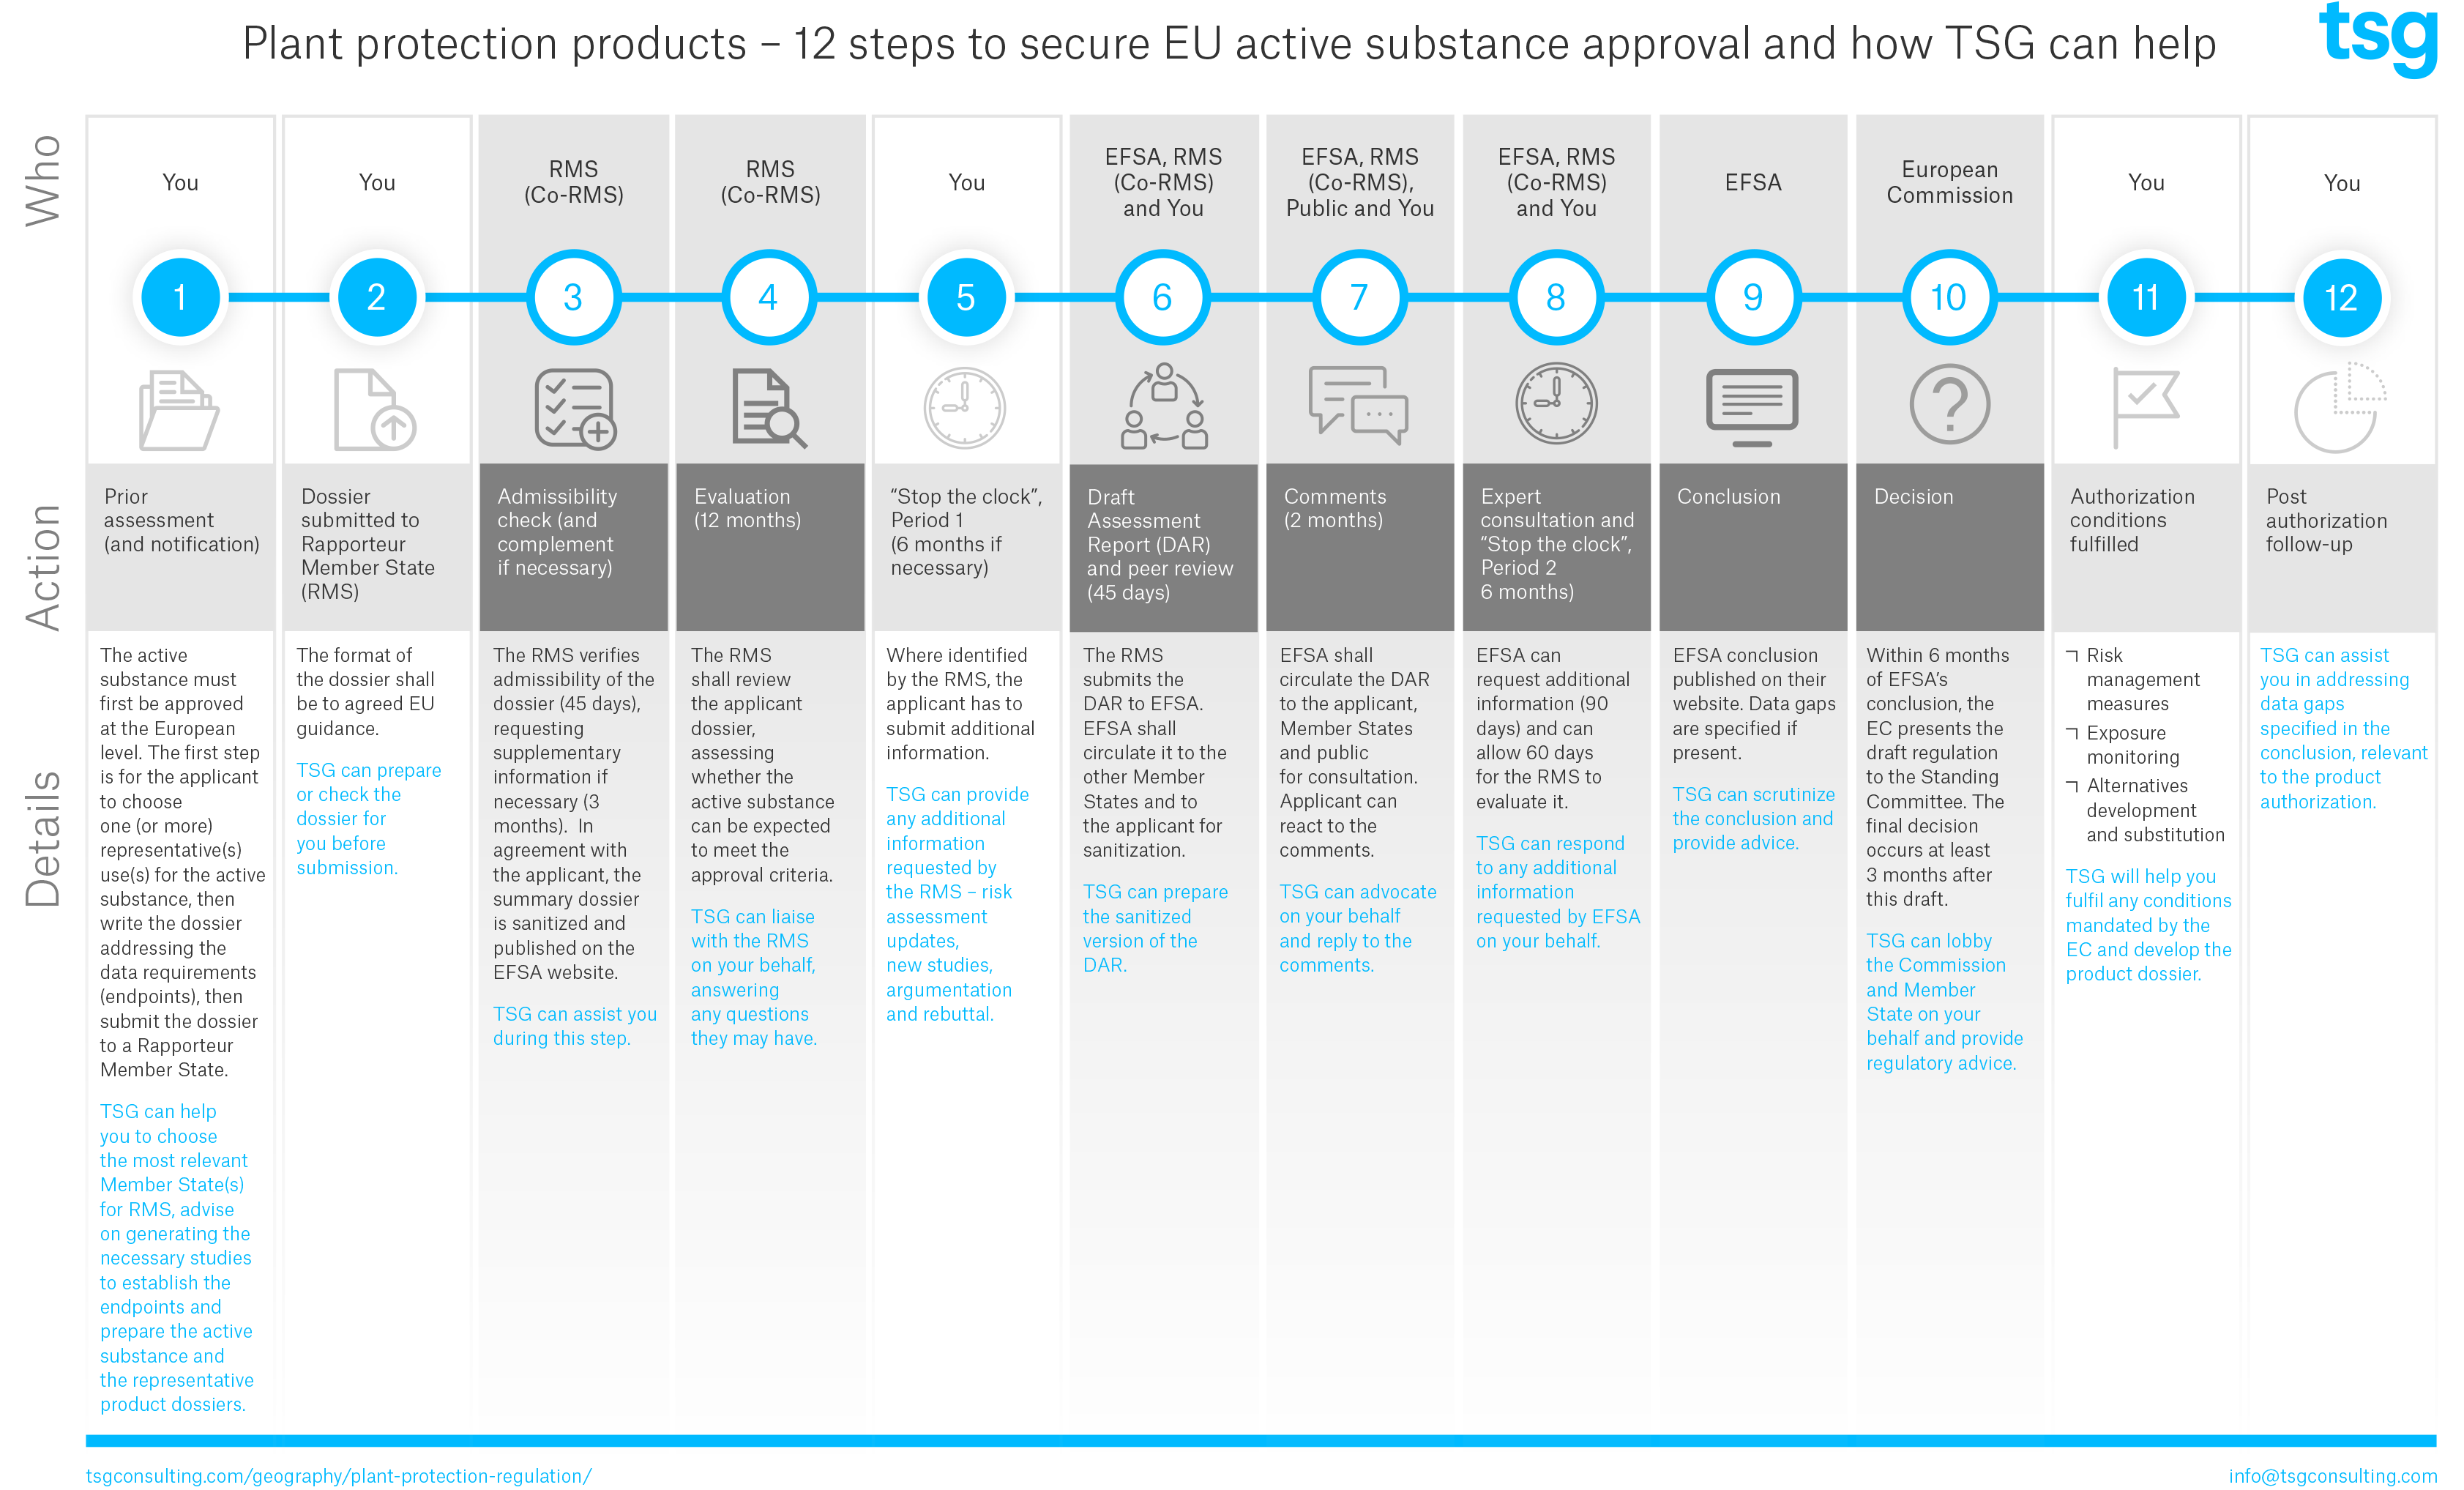 Plant Protection Products - 12 steps to secure EU active substance approval